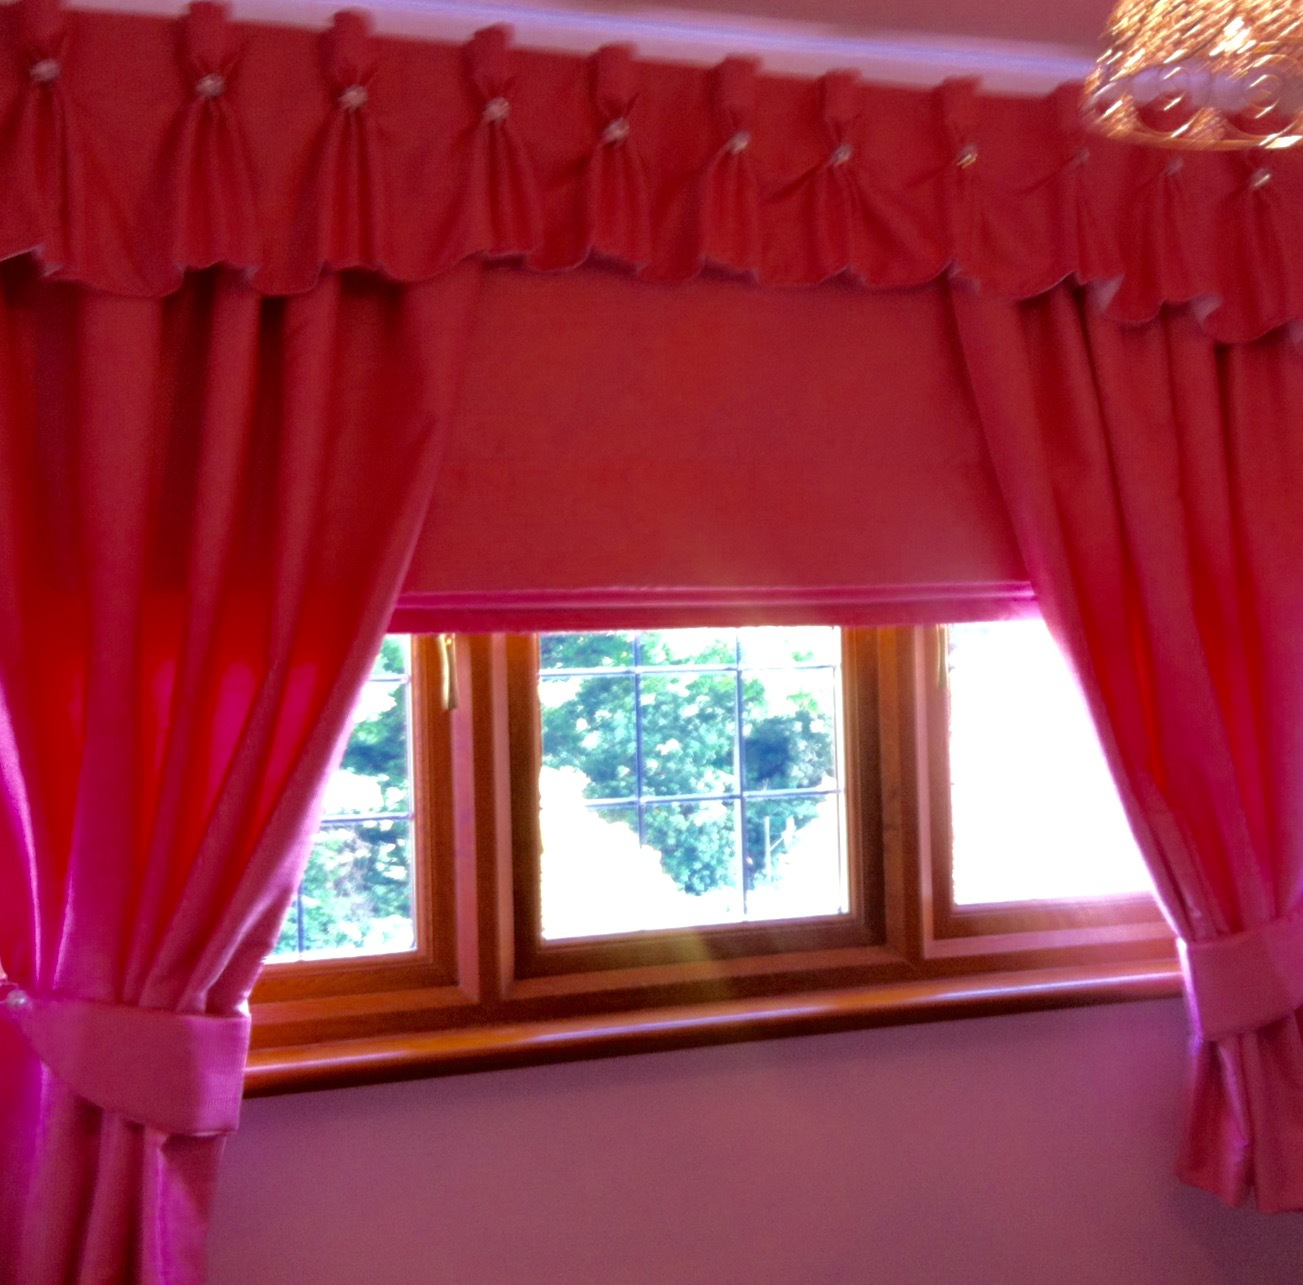 Deep red roller blind and curtains at a window with wooden frame